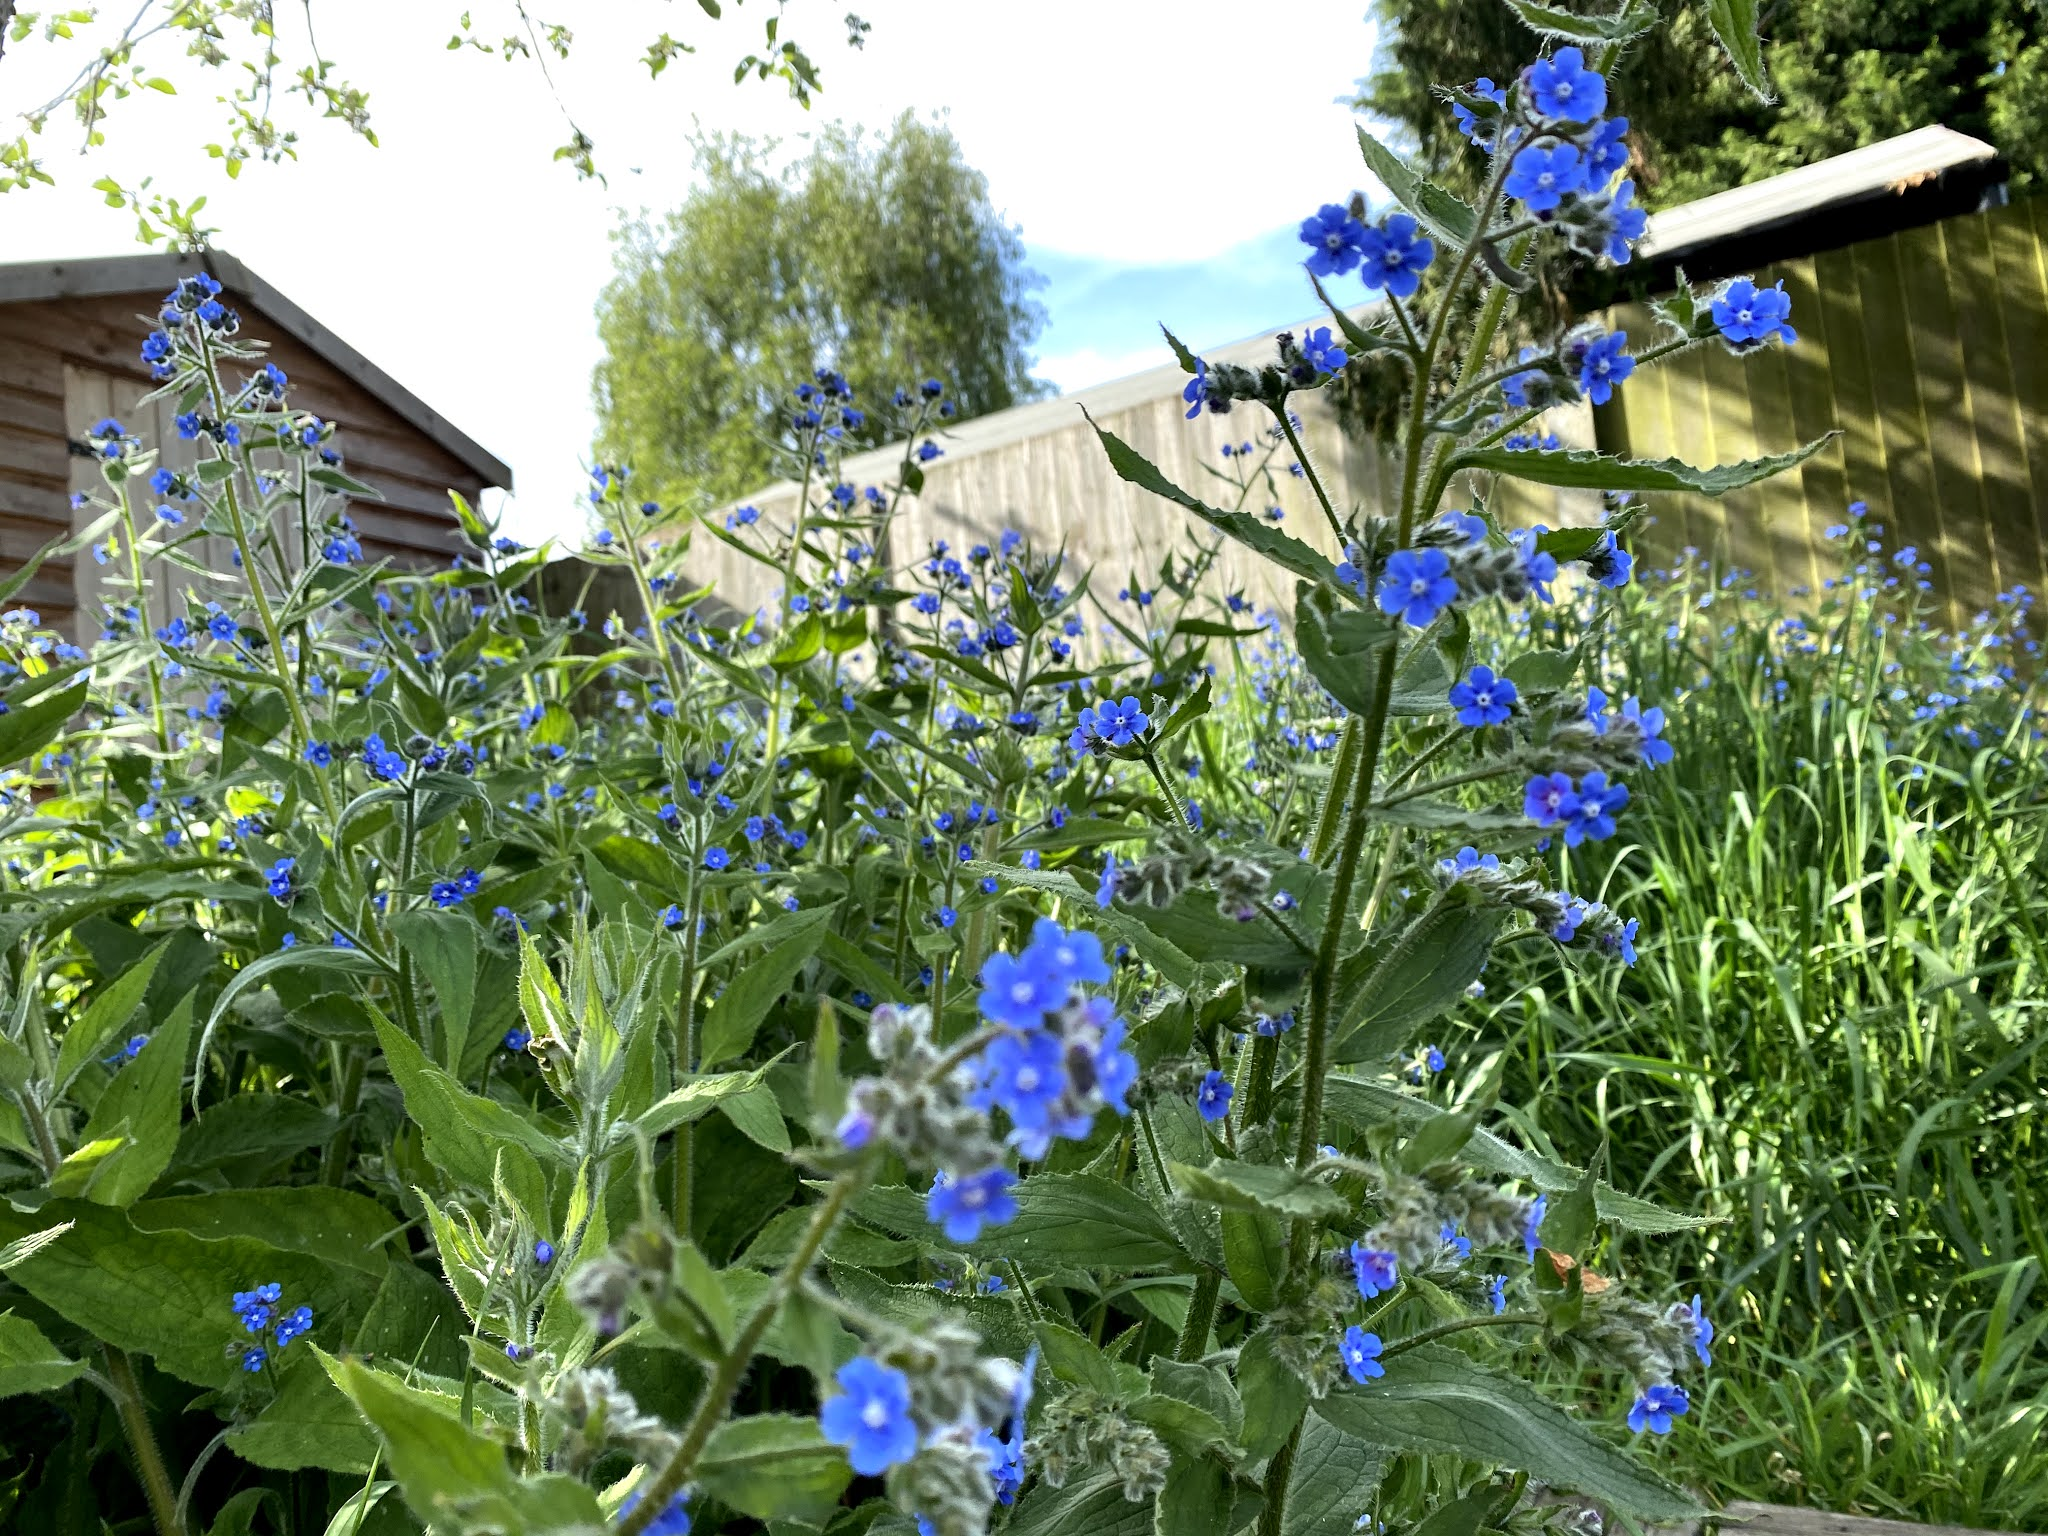 Close up view of blue wildflowers growing in a garden